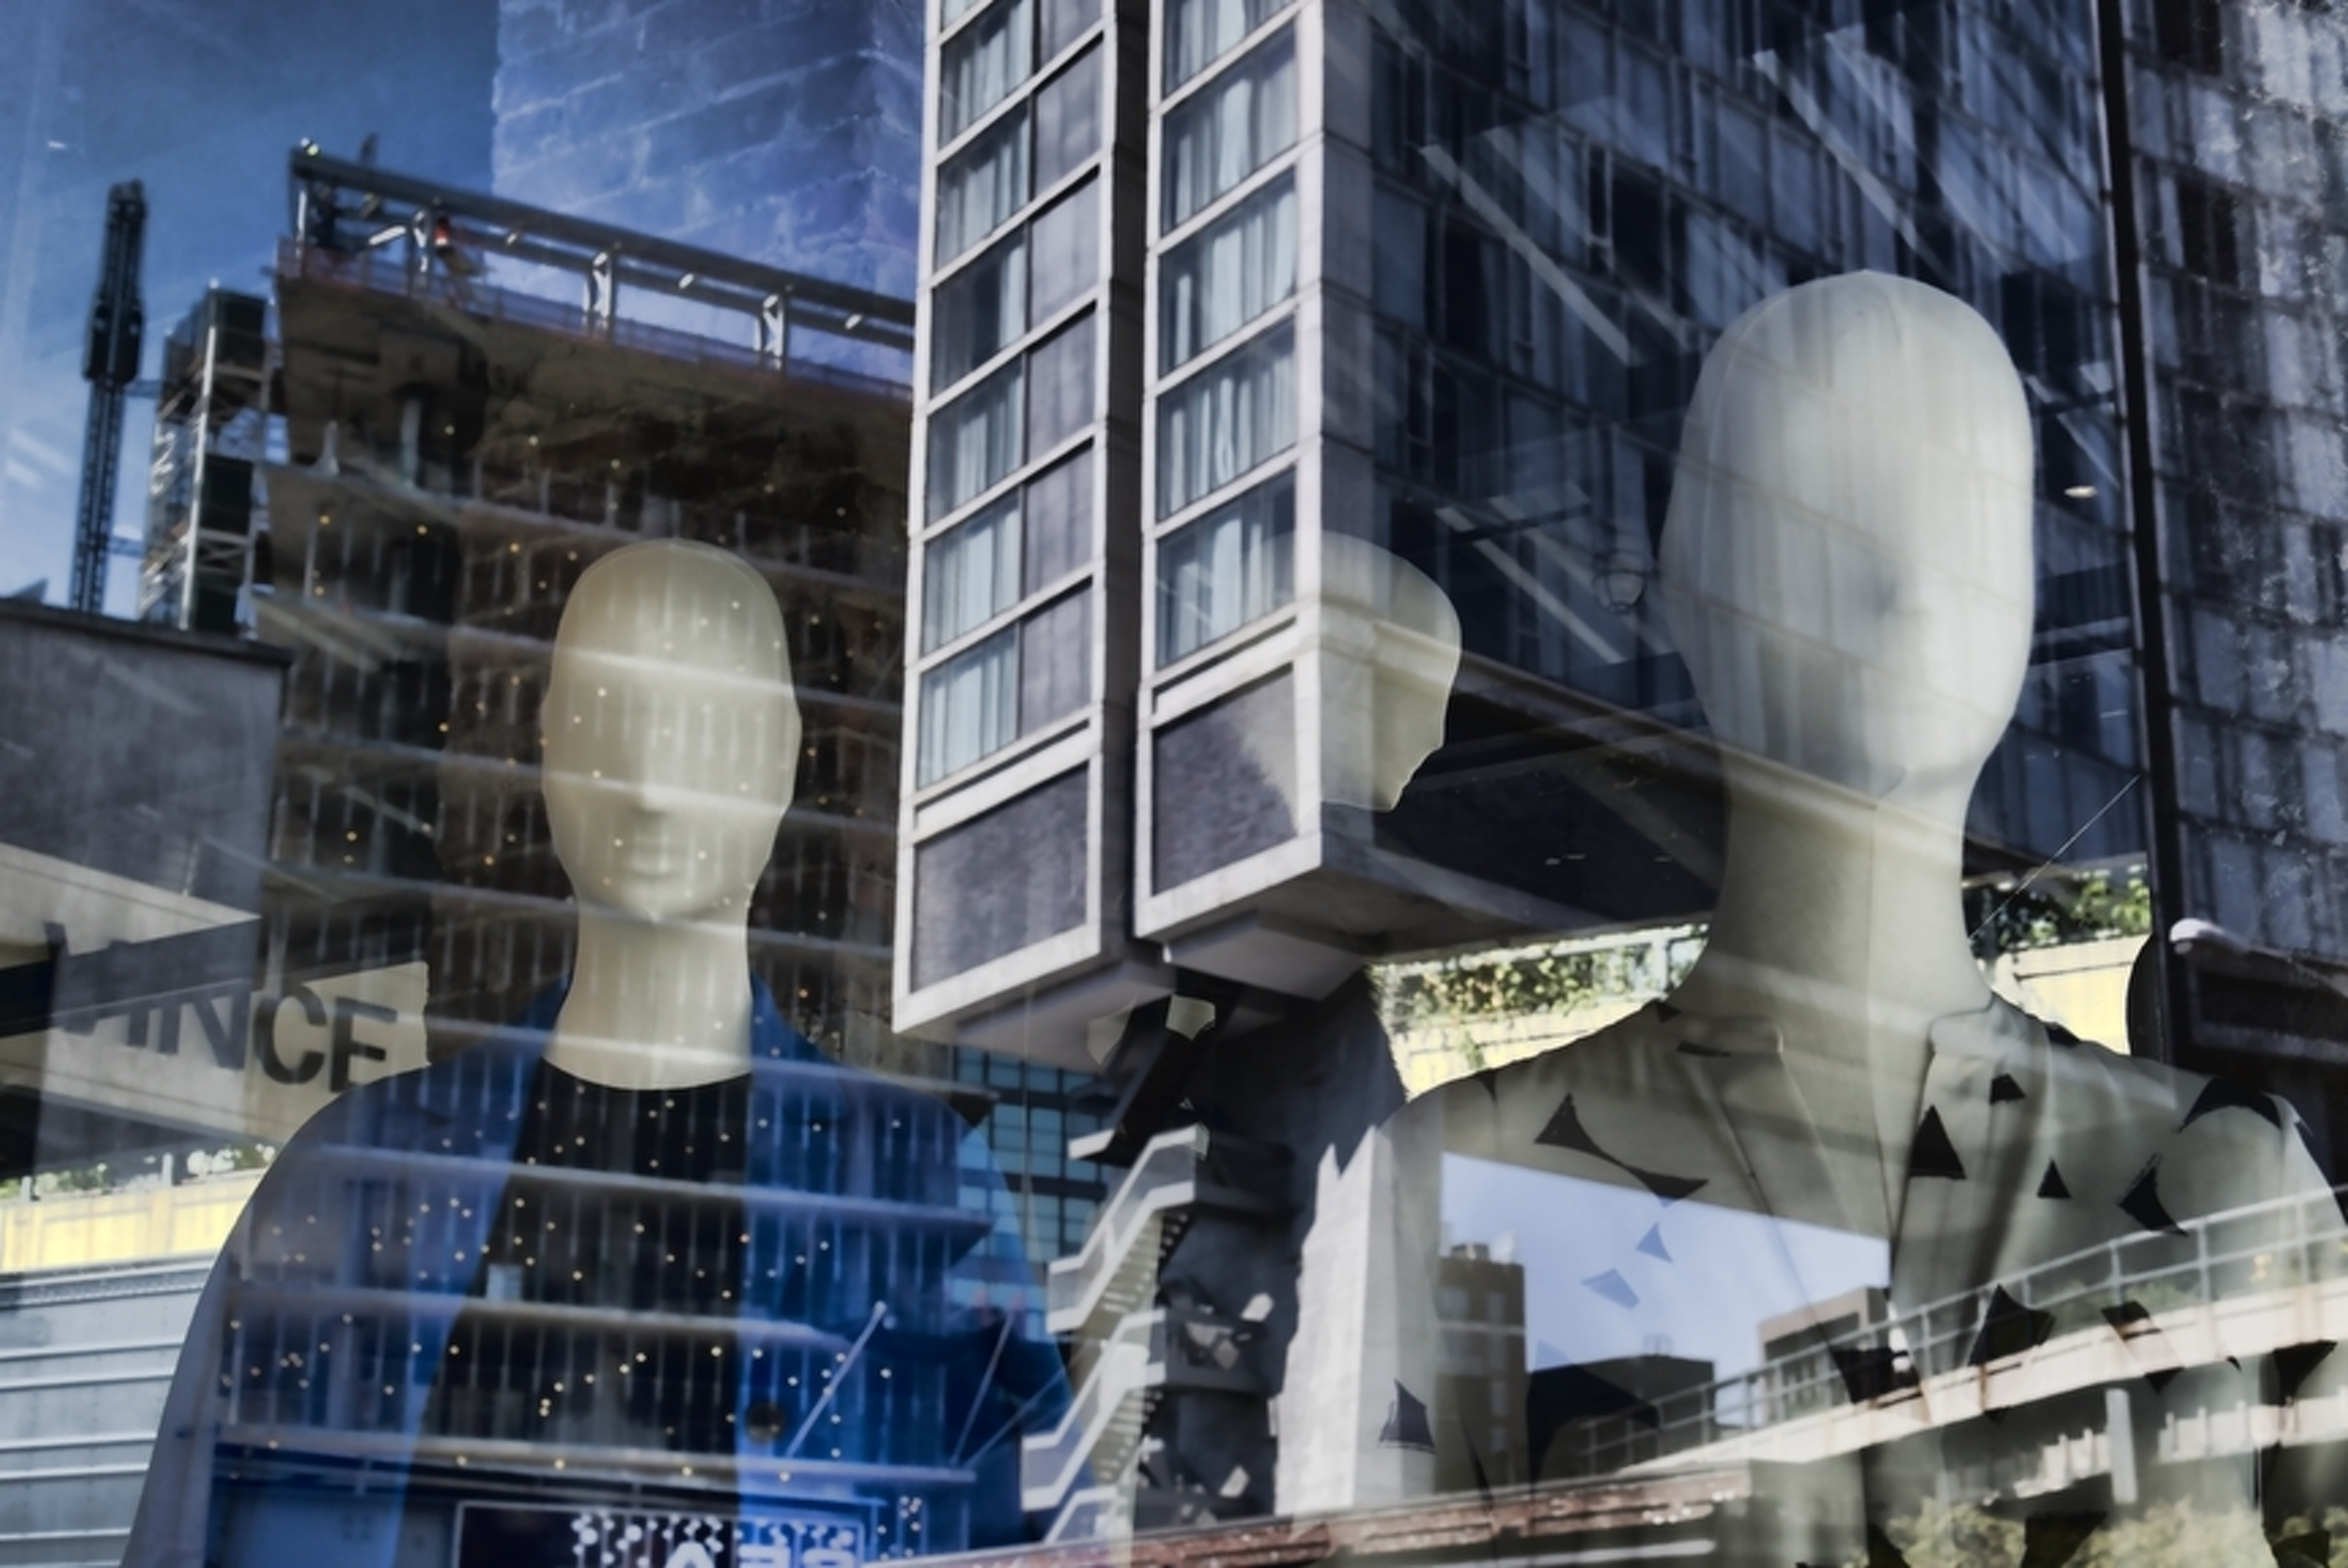 Mannequins & Reflections